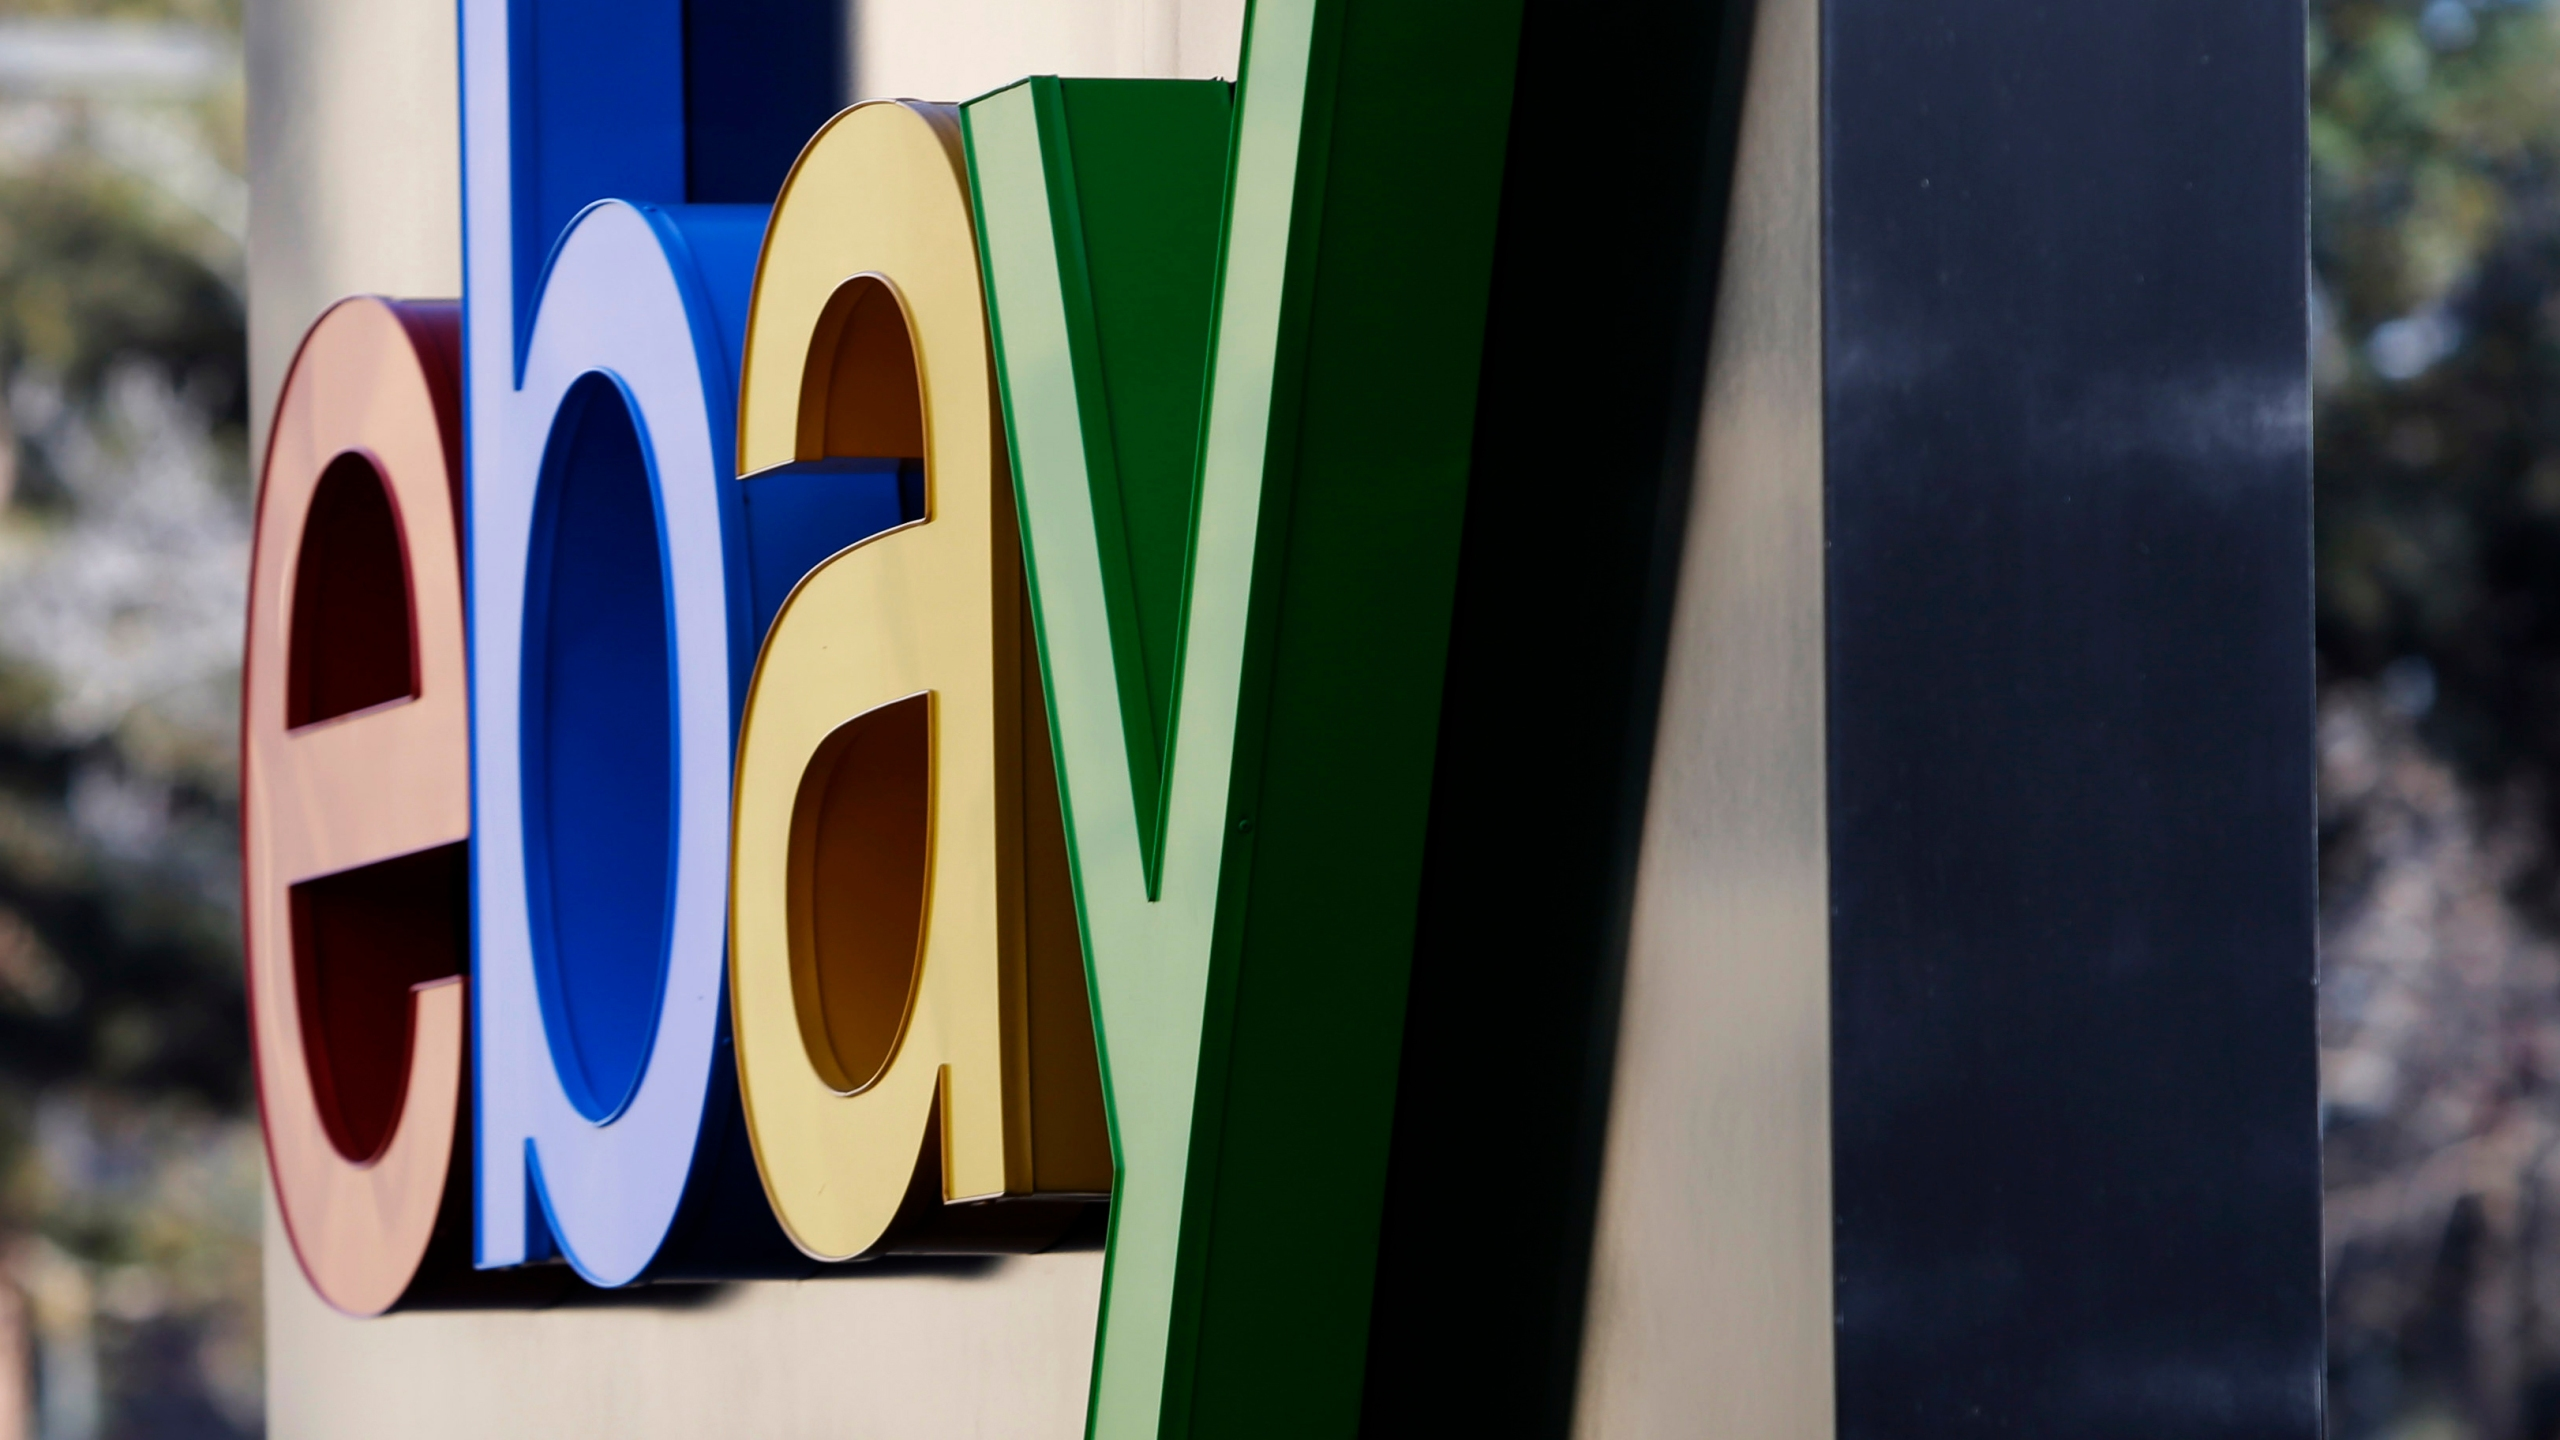 Norway S Adevinta Buys Ebay Classifieds Unit In 9 2b Deal Texomashomepage Com